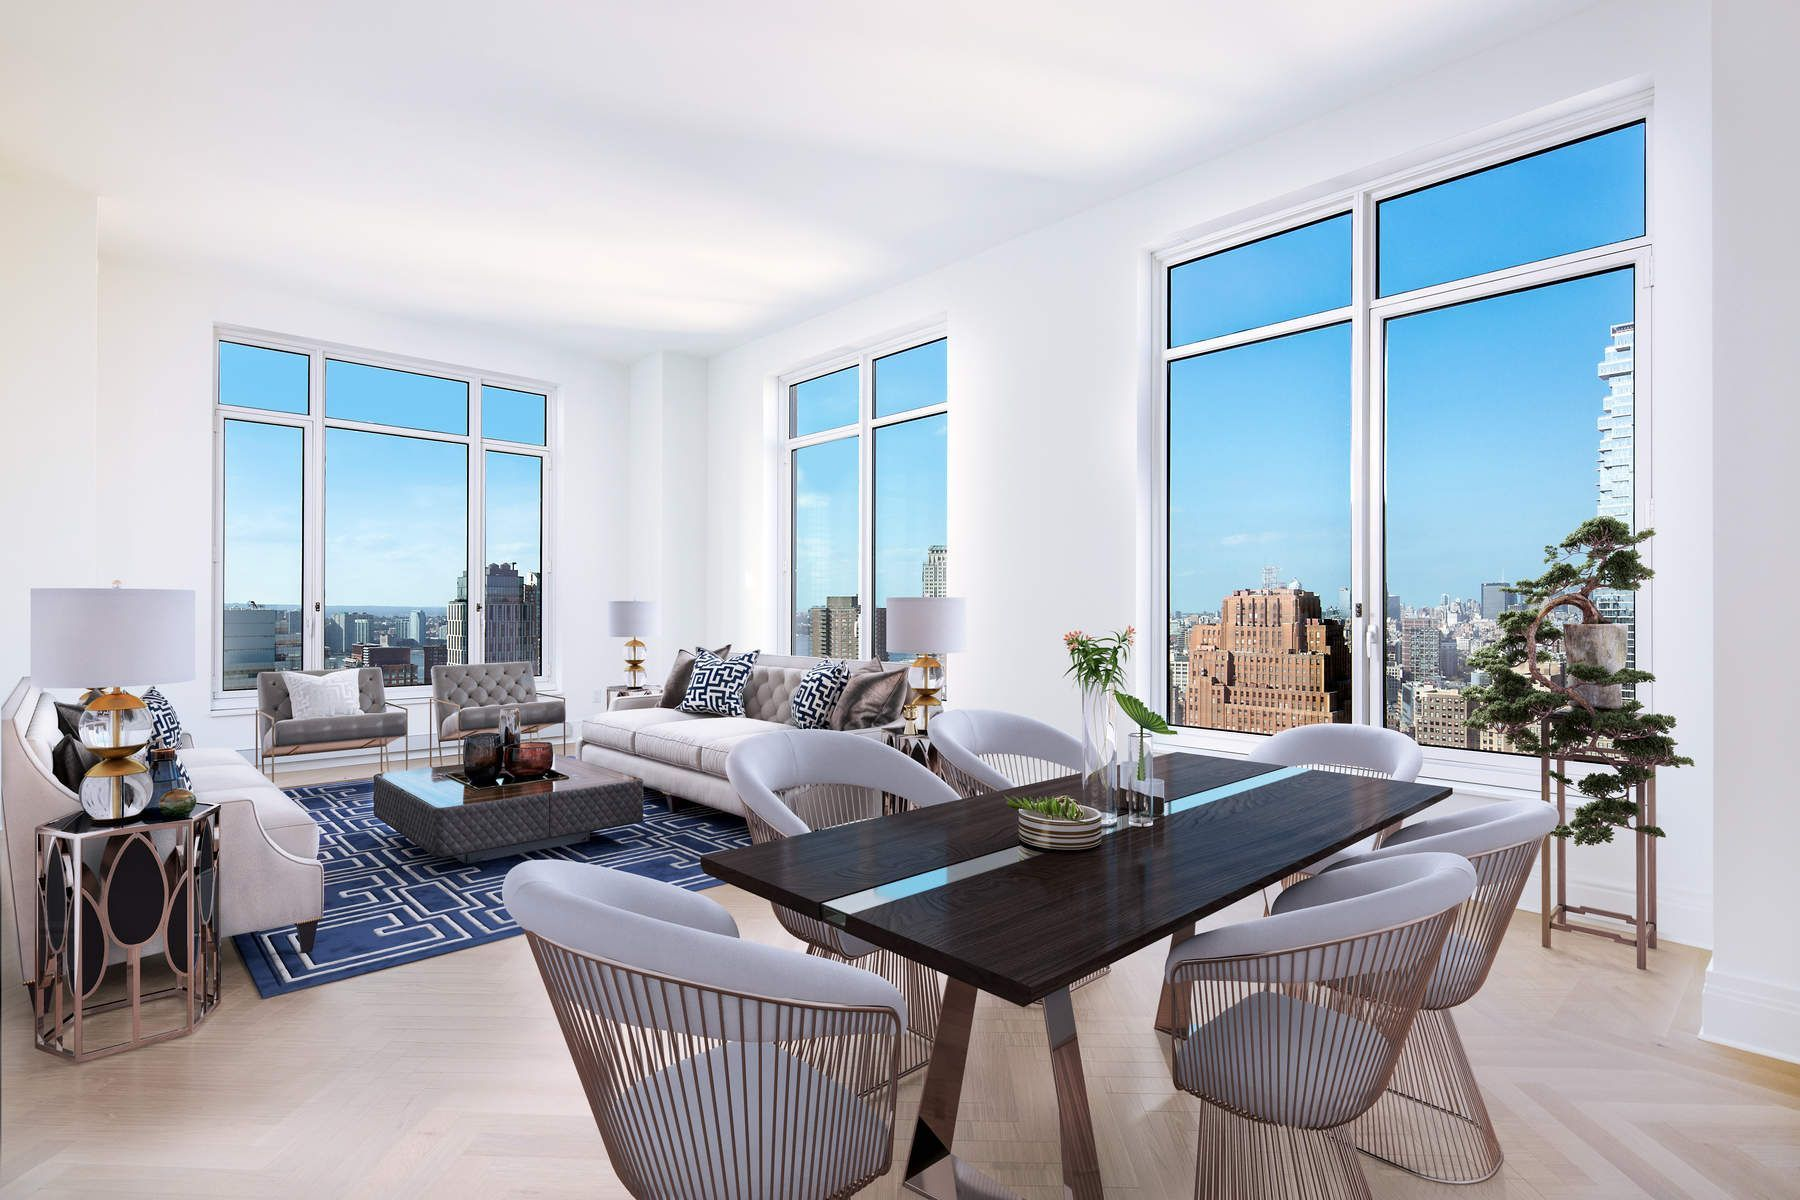 TENANT IN PLACE UNTIL 4/2019. Be the first to experience the unparalleled 5-star living offered exclusively at the Four Seasons Private Residences New York, Downtown in this 40th floor, 3 bedroom, 3.5 bath home. Floor to ceiling windows frame sweeping views West towards the Hudson River, North towards the Midtown skyline and South to One World Trade Center. This unit features an oversized corner Living/Dining Room, Master Bedroom Suite with luxurious 5 fixture bath, and two additional en-suite Bedrooms. The Eat-In Kitchen is equipped with top of the line Gaggenau appliances and features a large bay window. Lutron electronic shades already installed. Residents enjoy access to the services and amenities of the legendary Four Seasons Hotels and Resorts including a 75-ft. swimming pool, spa and salon, attended parking garage, world renown restaurant CUT by Wolfgang Puck, bar and lounge, ballroom facilities, and meeting rooms, as well as a comprehensive suite of a la carte services. The 38th floor is devoted to private residential amenities including a fitness center and yoga studio, private dining room, conservatory and lounge with access to loggias, Roto-designed kid's playroom, and screening room.